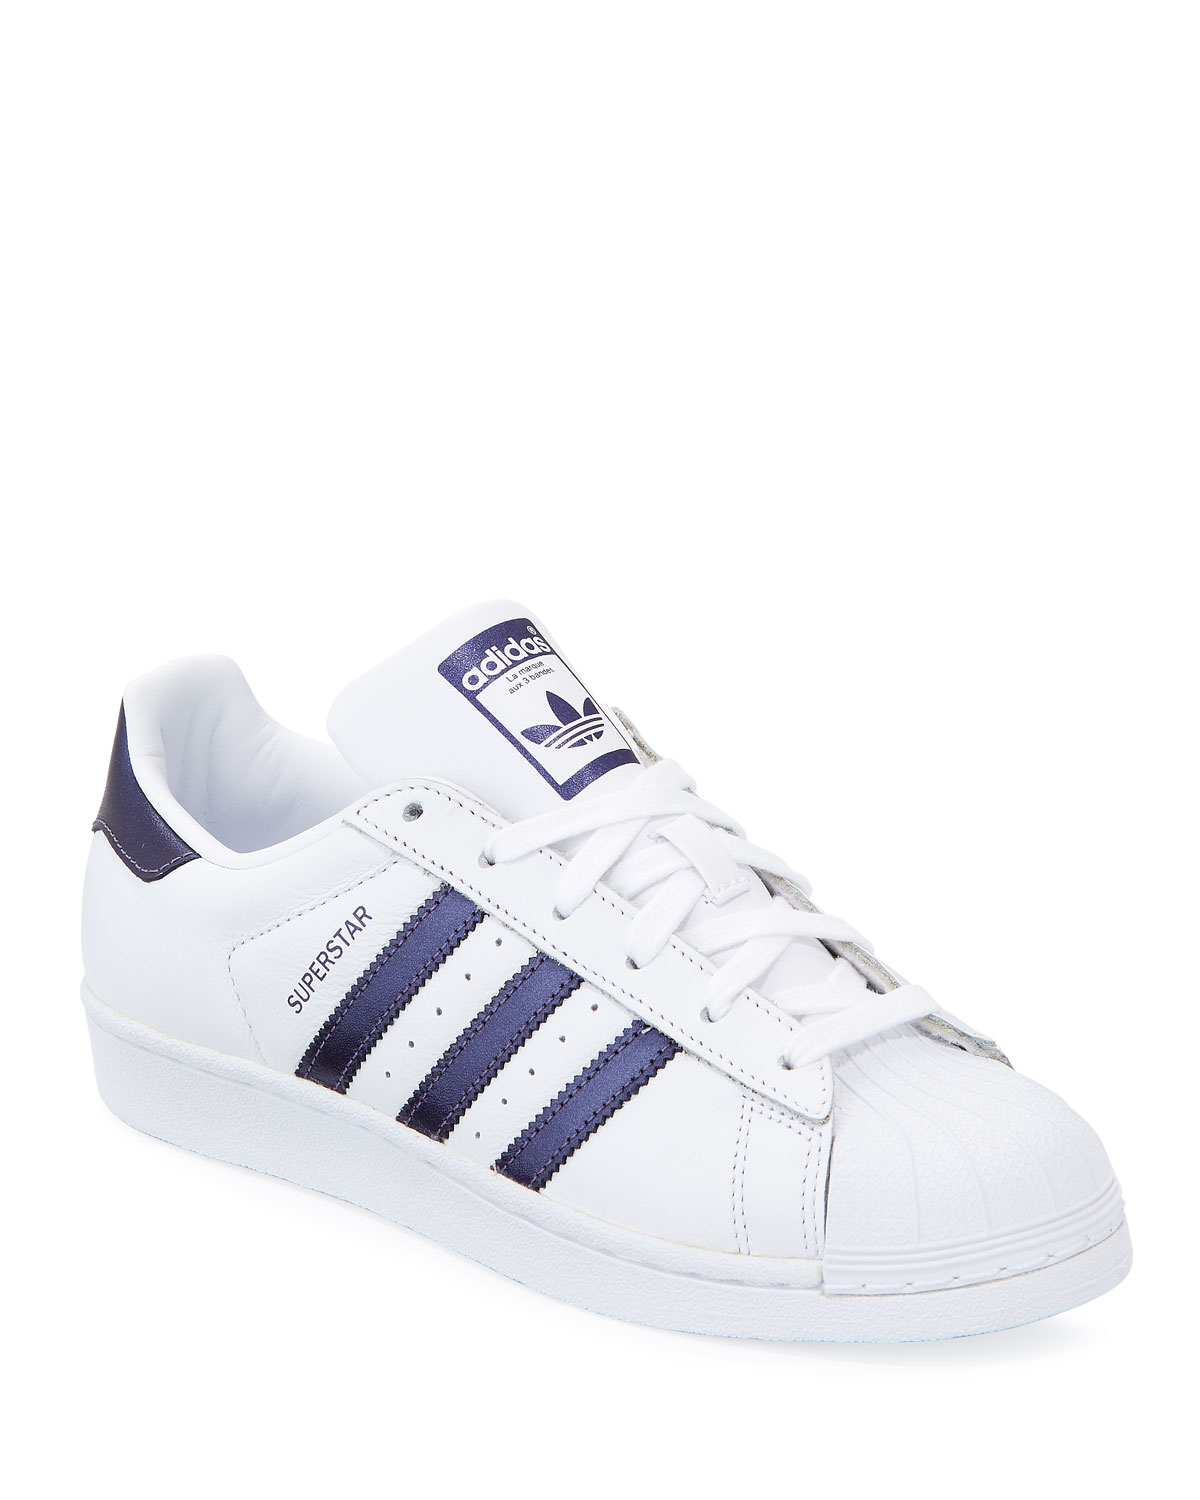 7e21ced364fe Adidas Superstar Lace-Up 3-Stripes® Sneakers